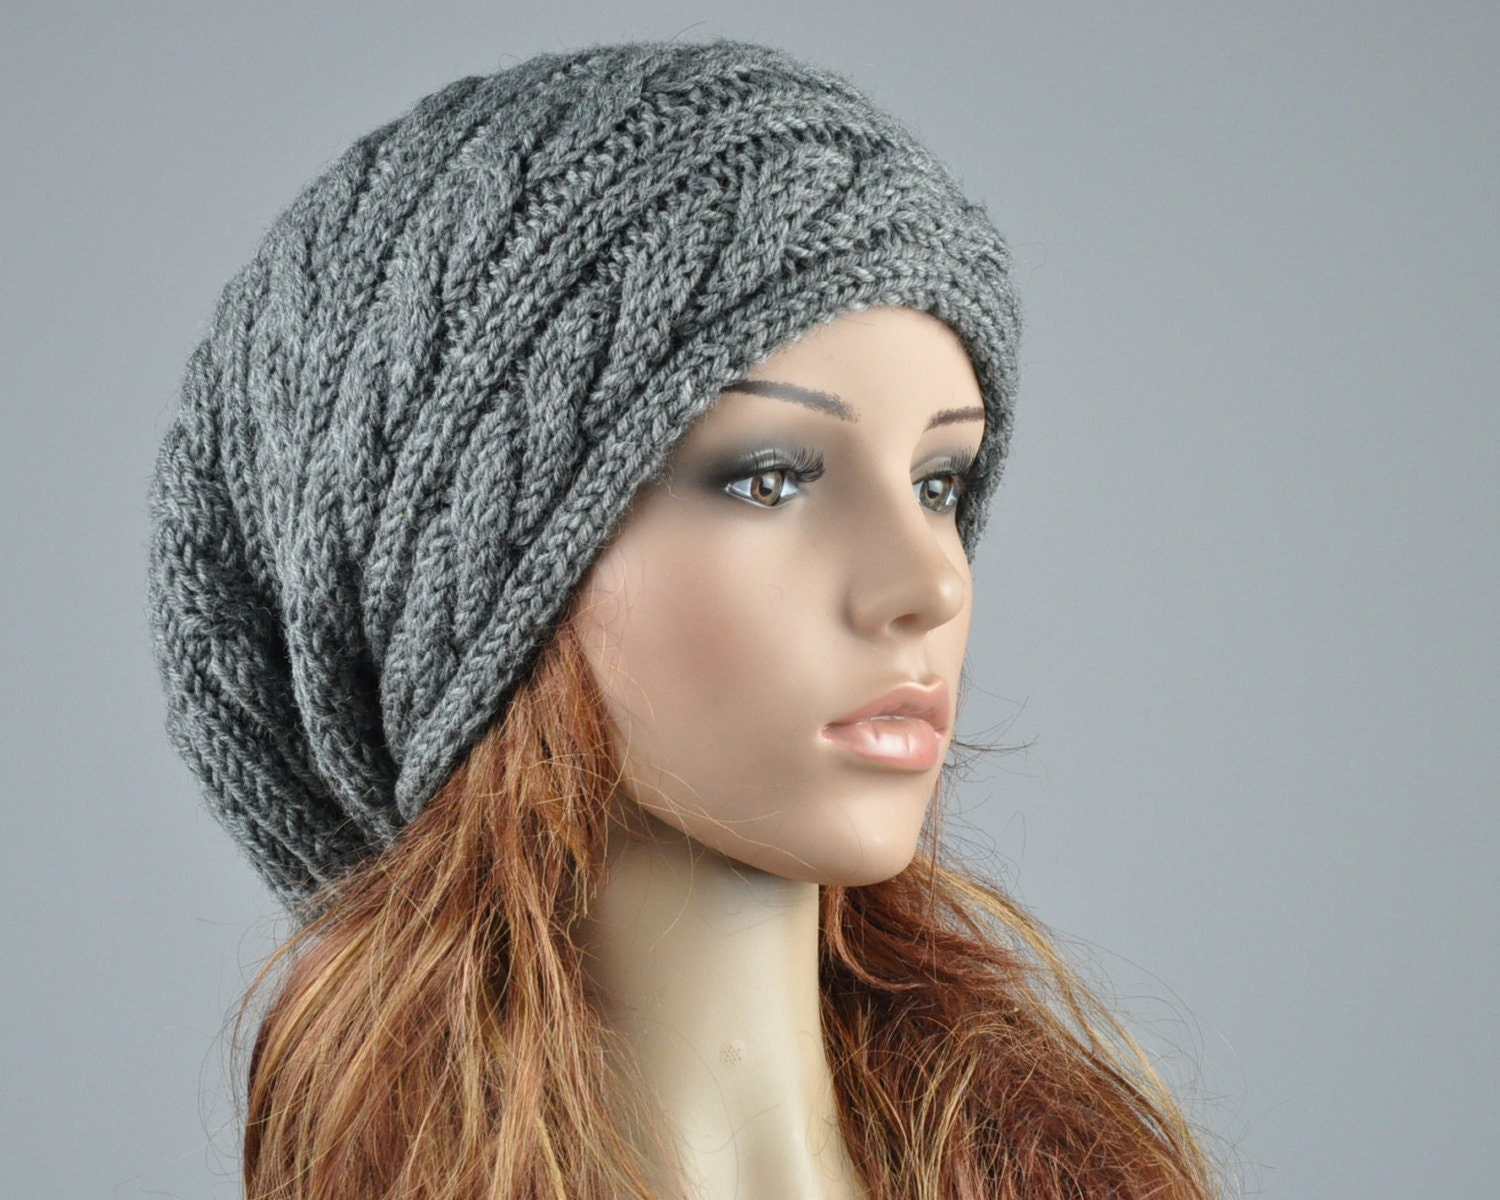 Free Knit Pattern For Boot Toppers : Hand knit hat woman men unisex Charcoal hat slouchy hat cable